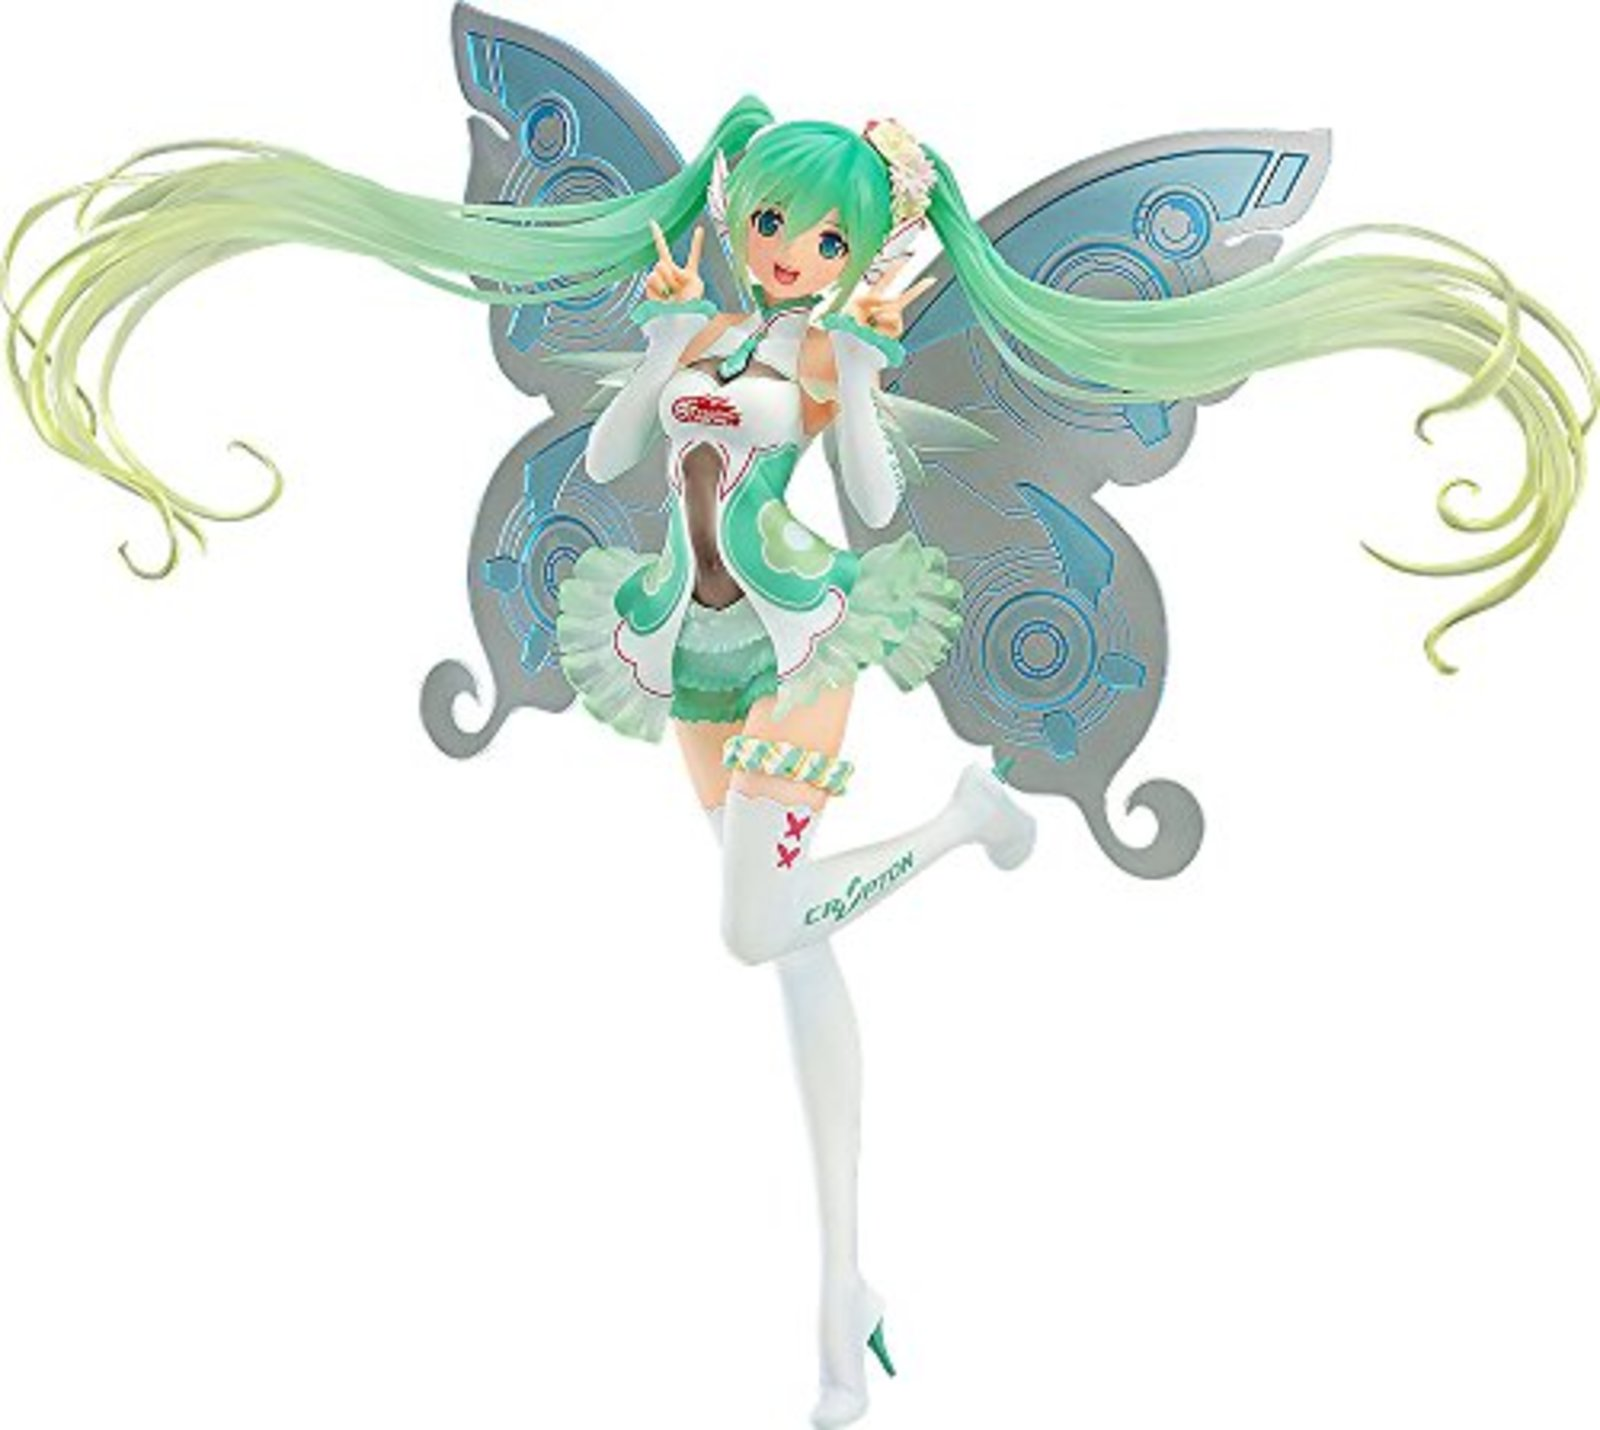 Hatsune Miku GT Project Racing  Miku 2017 Ver. 1 1 scale ABS&PVC painted F S nuovo  negozio online